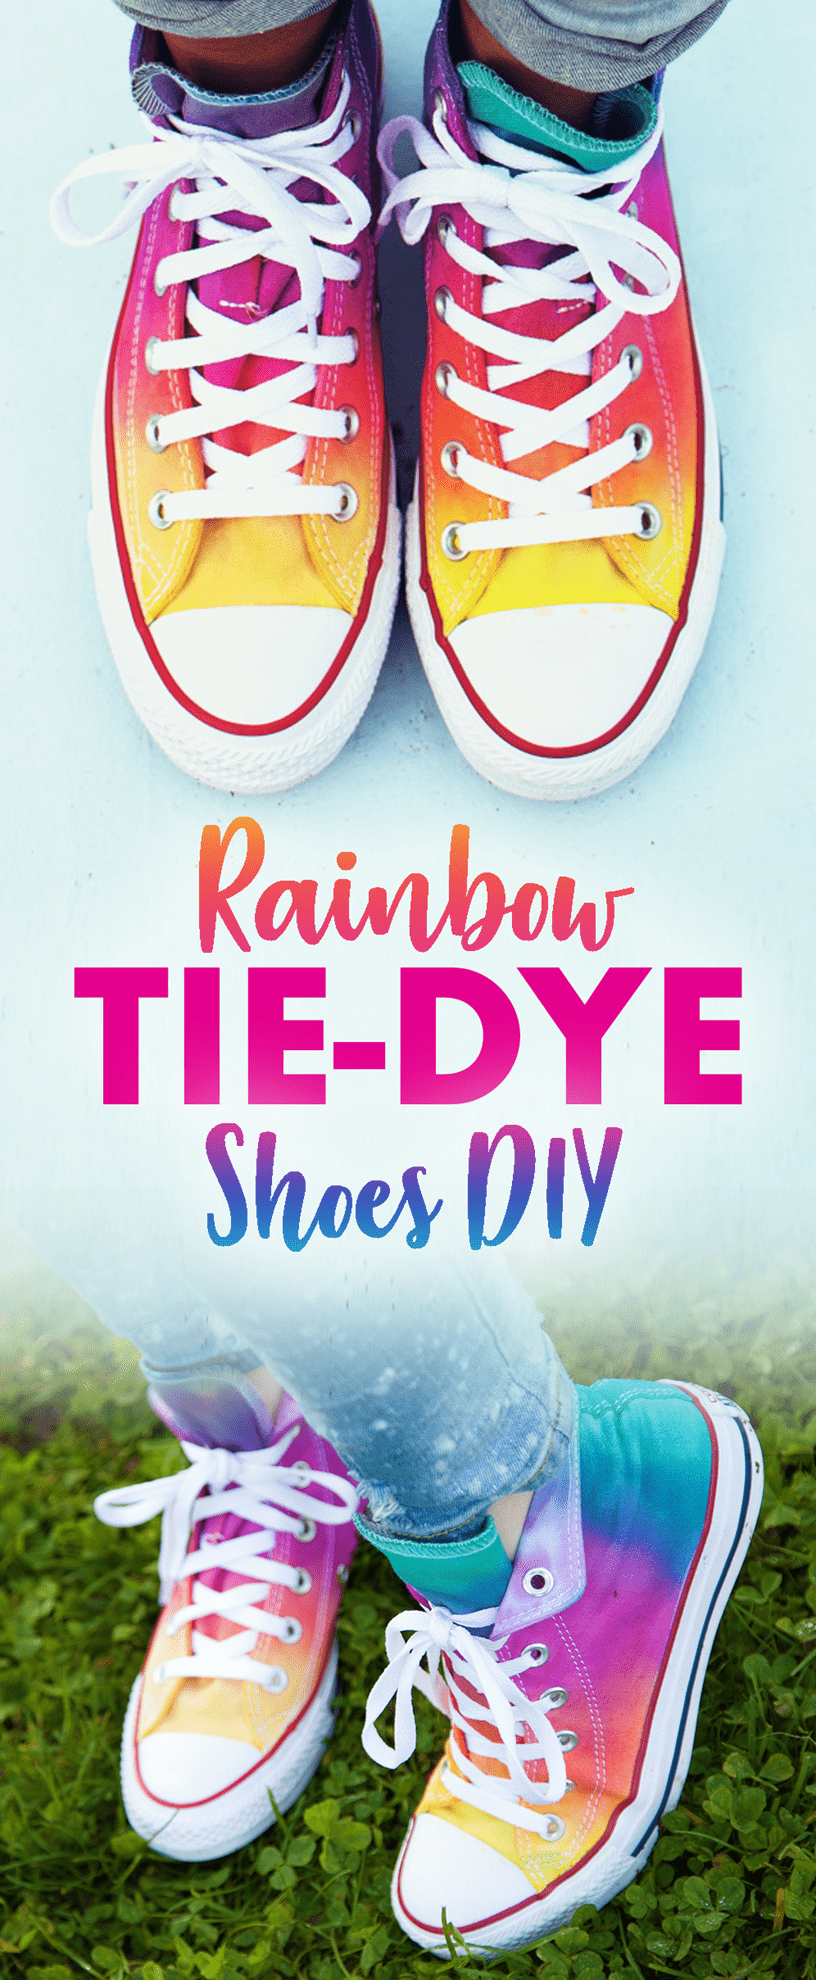 Rainbow Tie-Dye Shoes Use this super easy brush-on tie dye technique to make these fabulous rainbow shoes! #shoestiedye #rainbowtiedye #rainbowshoes #tiedyeyoursummer #tdys #TDYS #tuliptiedye